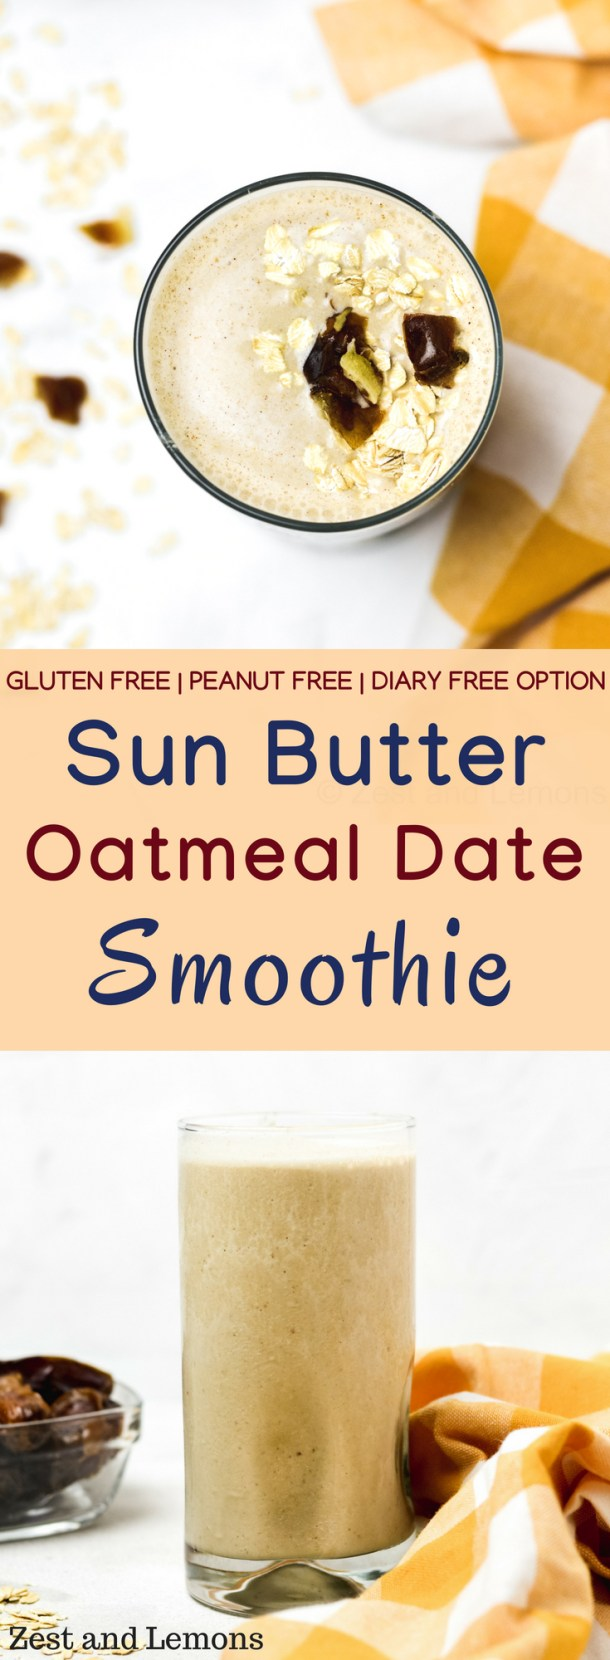 A creamy smoothie made with sunflower seed butter, oatmeal, and dates. This smoothie is perfect for breakfast or a mid-afternoon snack! - Zest and Lemons #glutenfree #dairyfreeoption #smoothie #breakfastshake